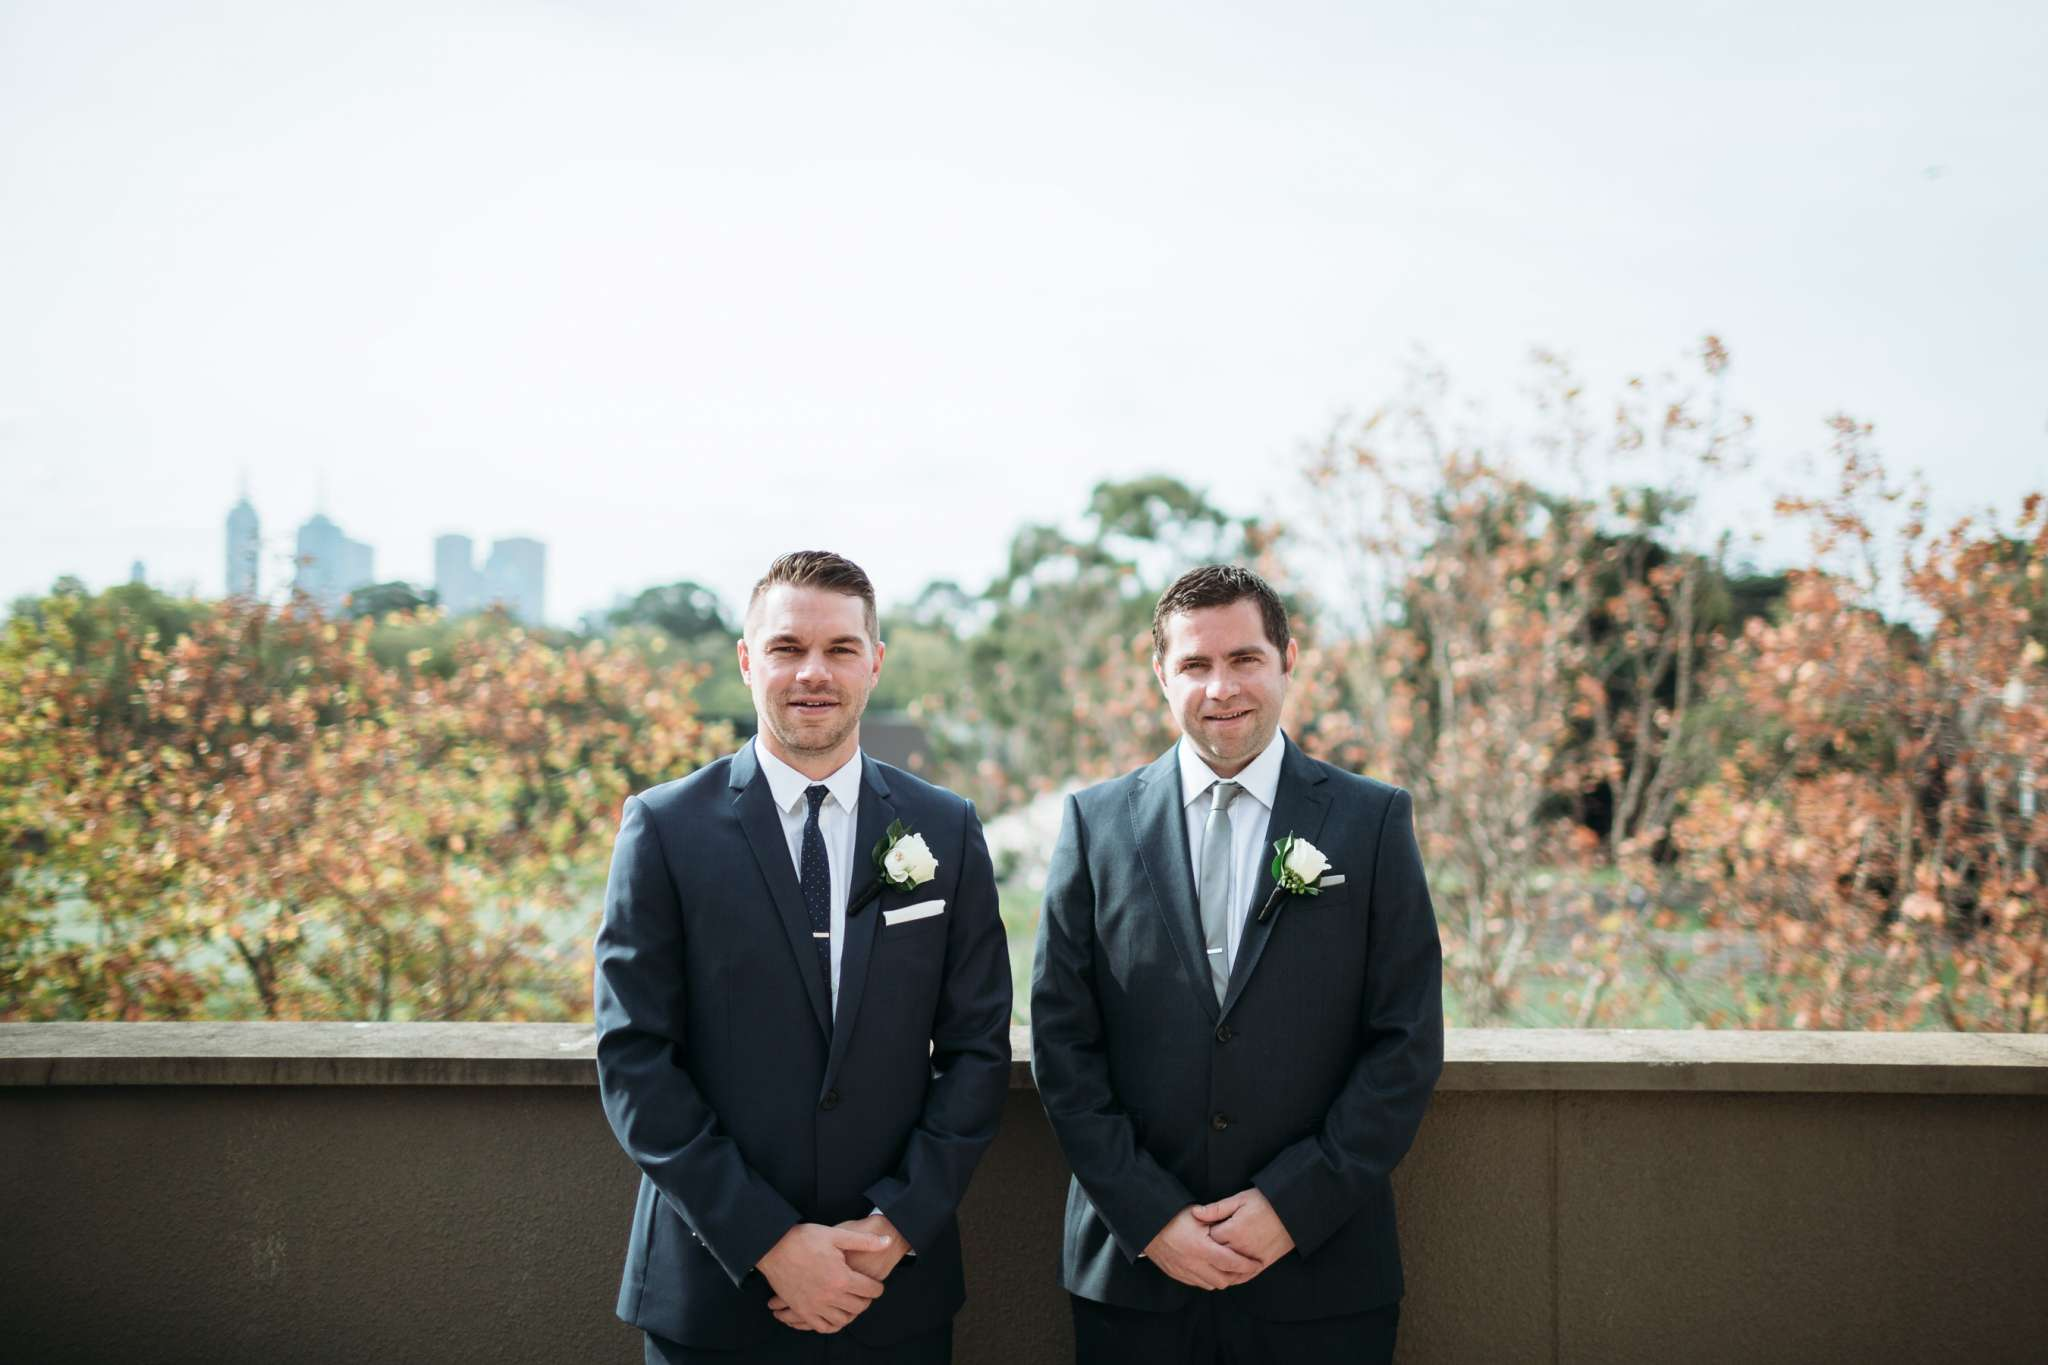 Wedding Photography Melbourne - Max & Megan 066